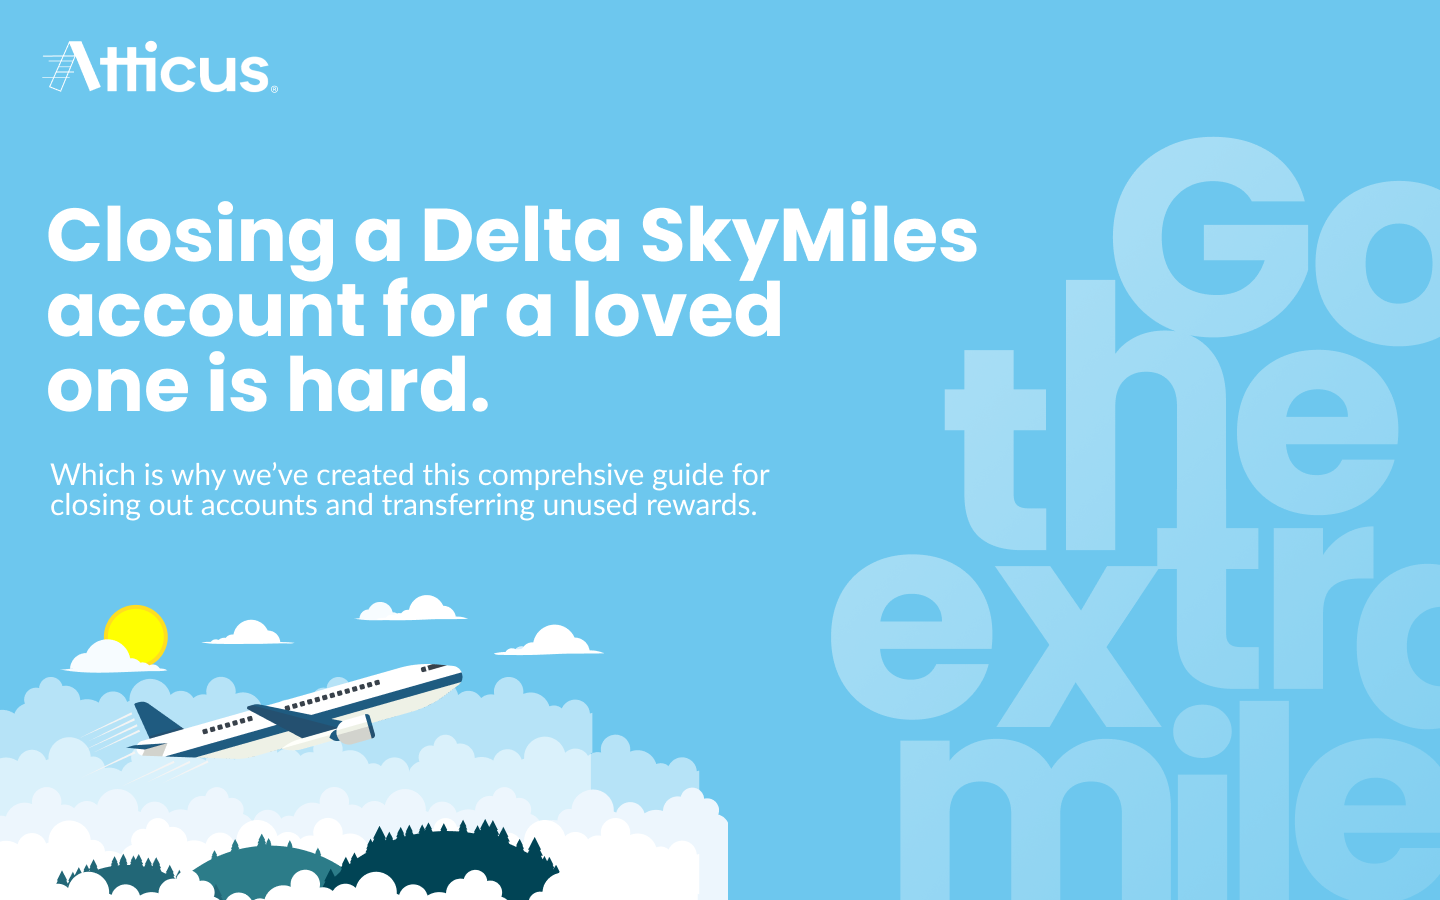 Atticus graphic for how to close Delta Air Lines SkyMiles account